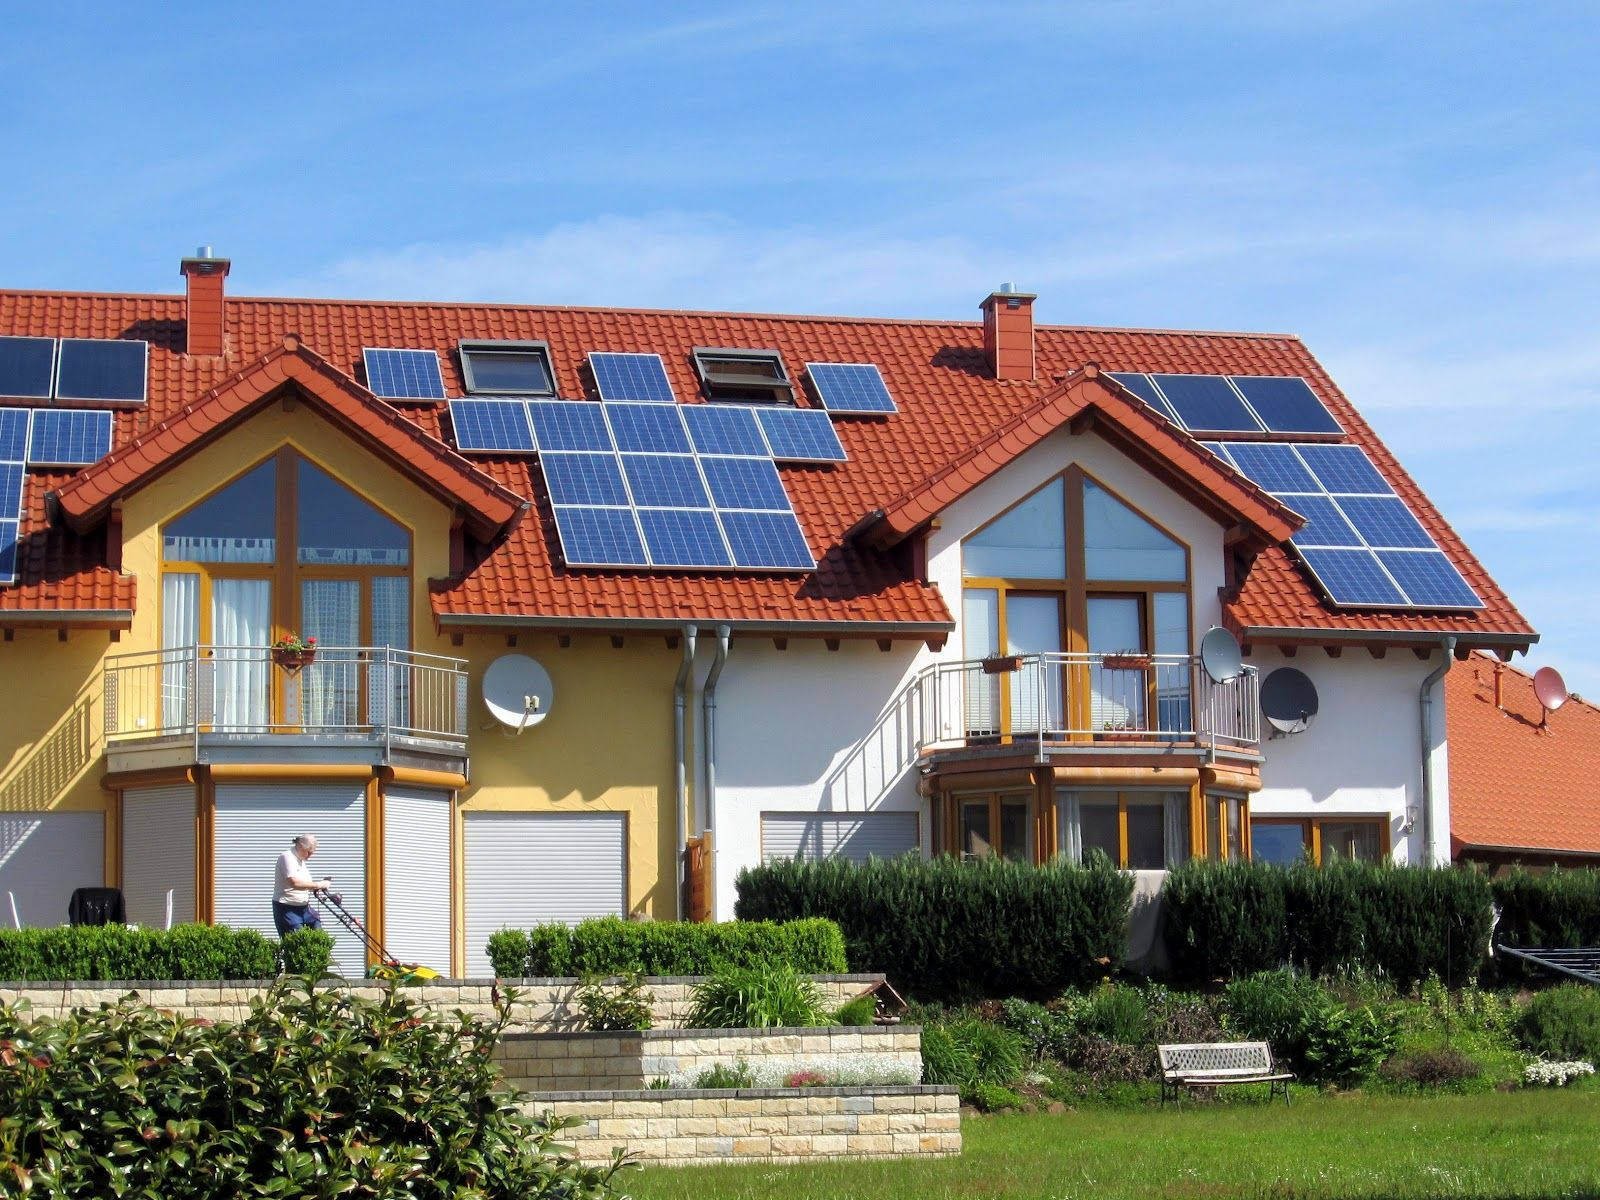 Best solar panels for house solar panels for house for Solar powered home designs